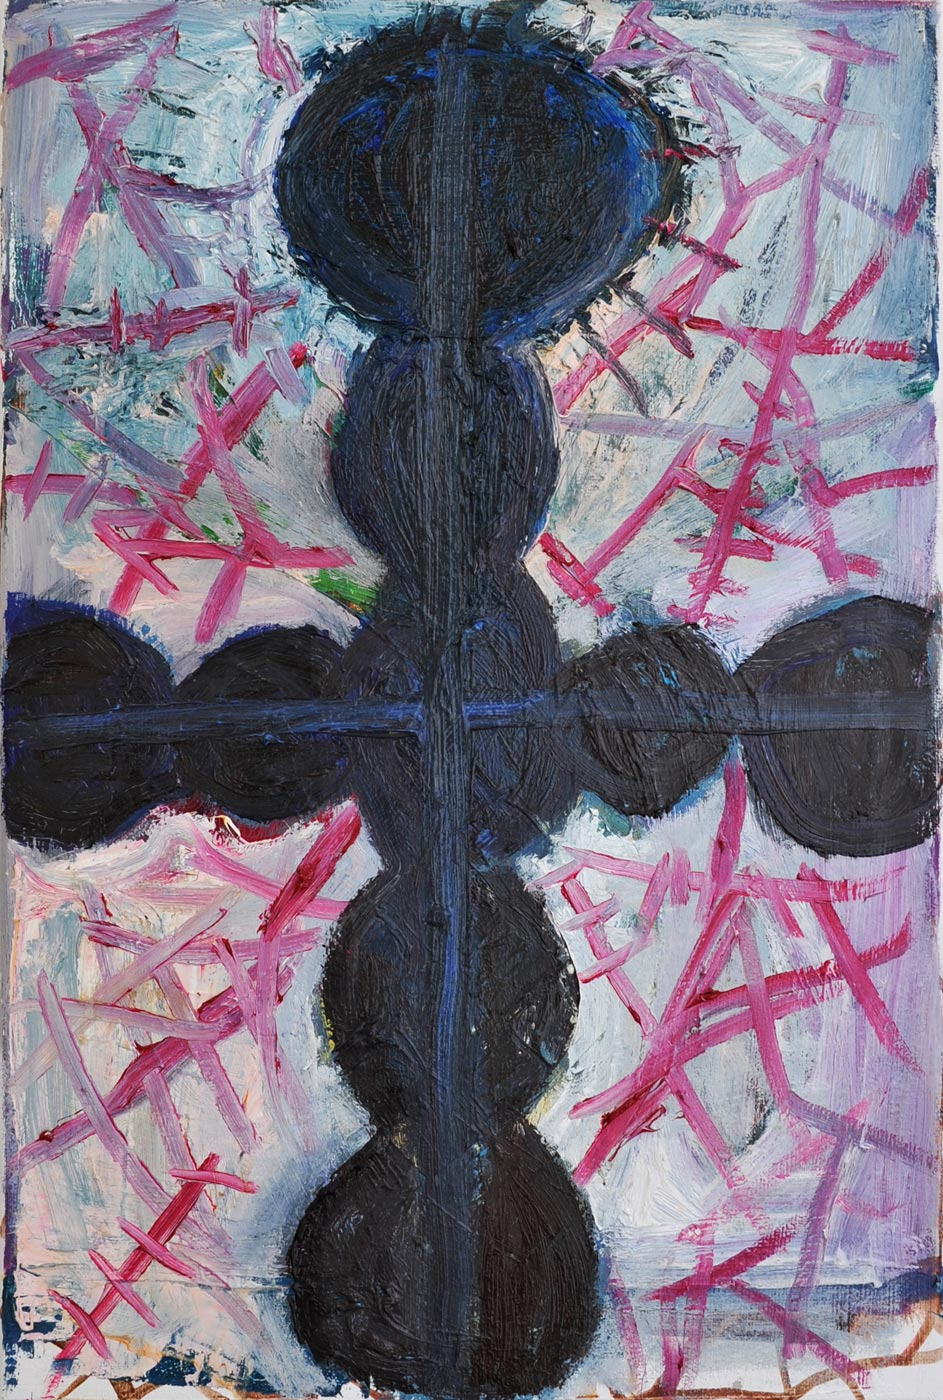 Manuel  Ocampo - Cross with Wounds, 2013